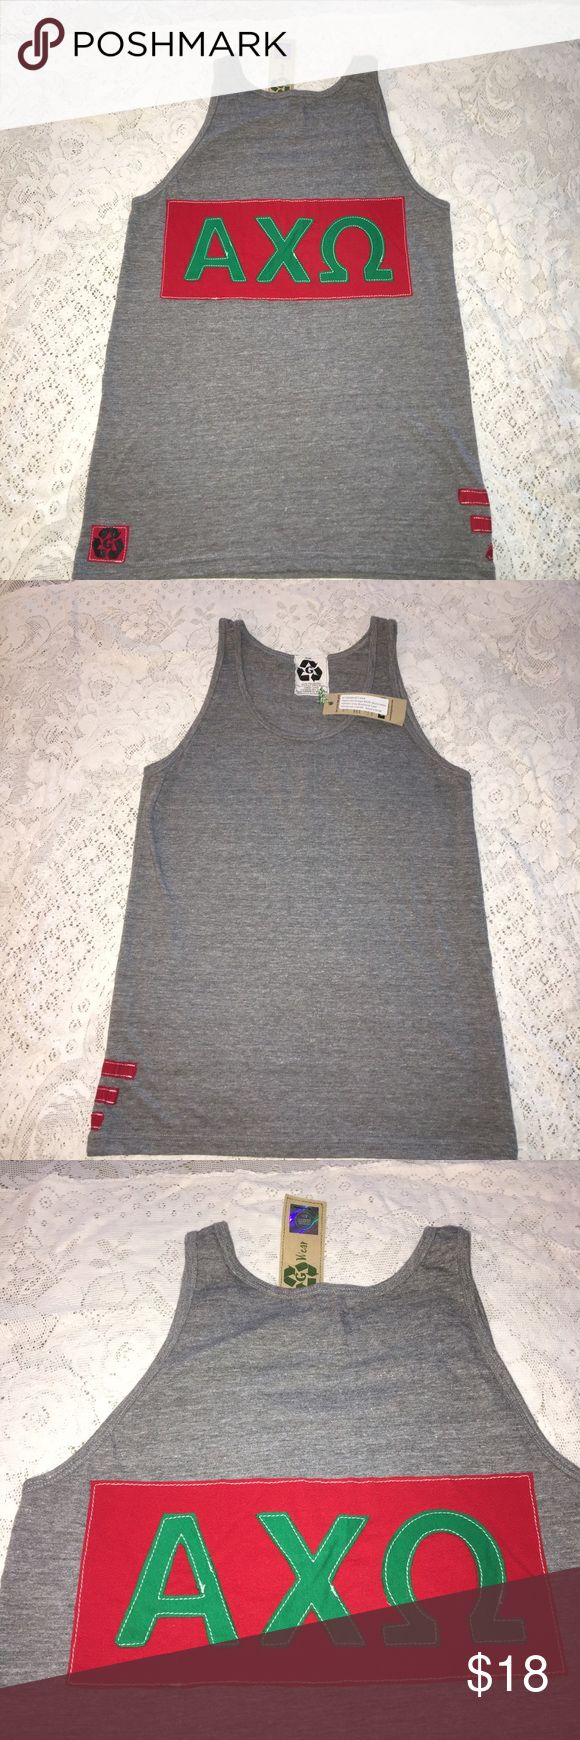 NWT Alpha Chi Omega gray boyfriend sorority tank NWT Alpha Chi Omega gray, red & green scoop neck tank top. Size AM. 50% polyester 25% cotton 25% rayon. Red & green sorority lettering symbol on back. Solid front. Made in USA. $36 retail. Rare and one of a kind. #greek #life #college #university #alpha #chi #omega #sorority #pledge #gray #red #green #big #little #sister #nwt #tank #new #scoop Never used. Smoke free home. Check closet for similar items & additional sororities. ❌no trades❌ FIRM…